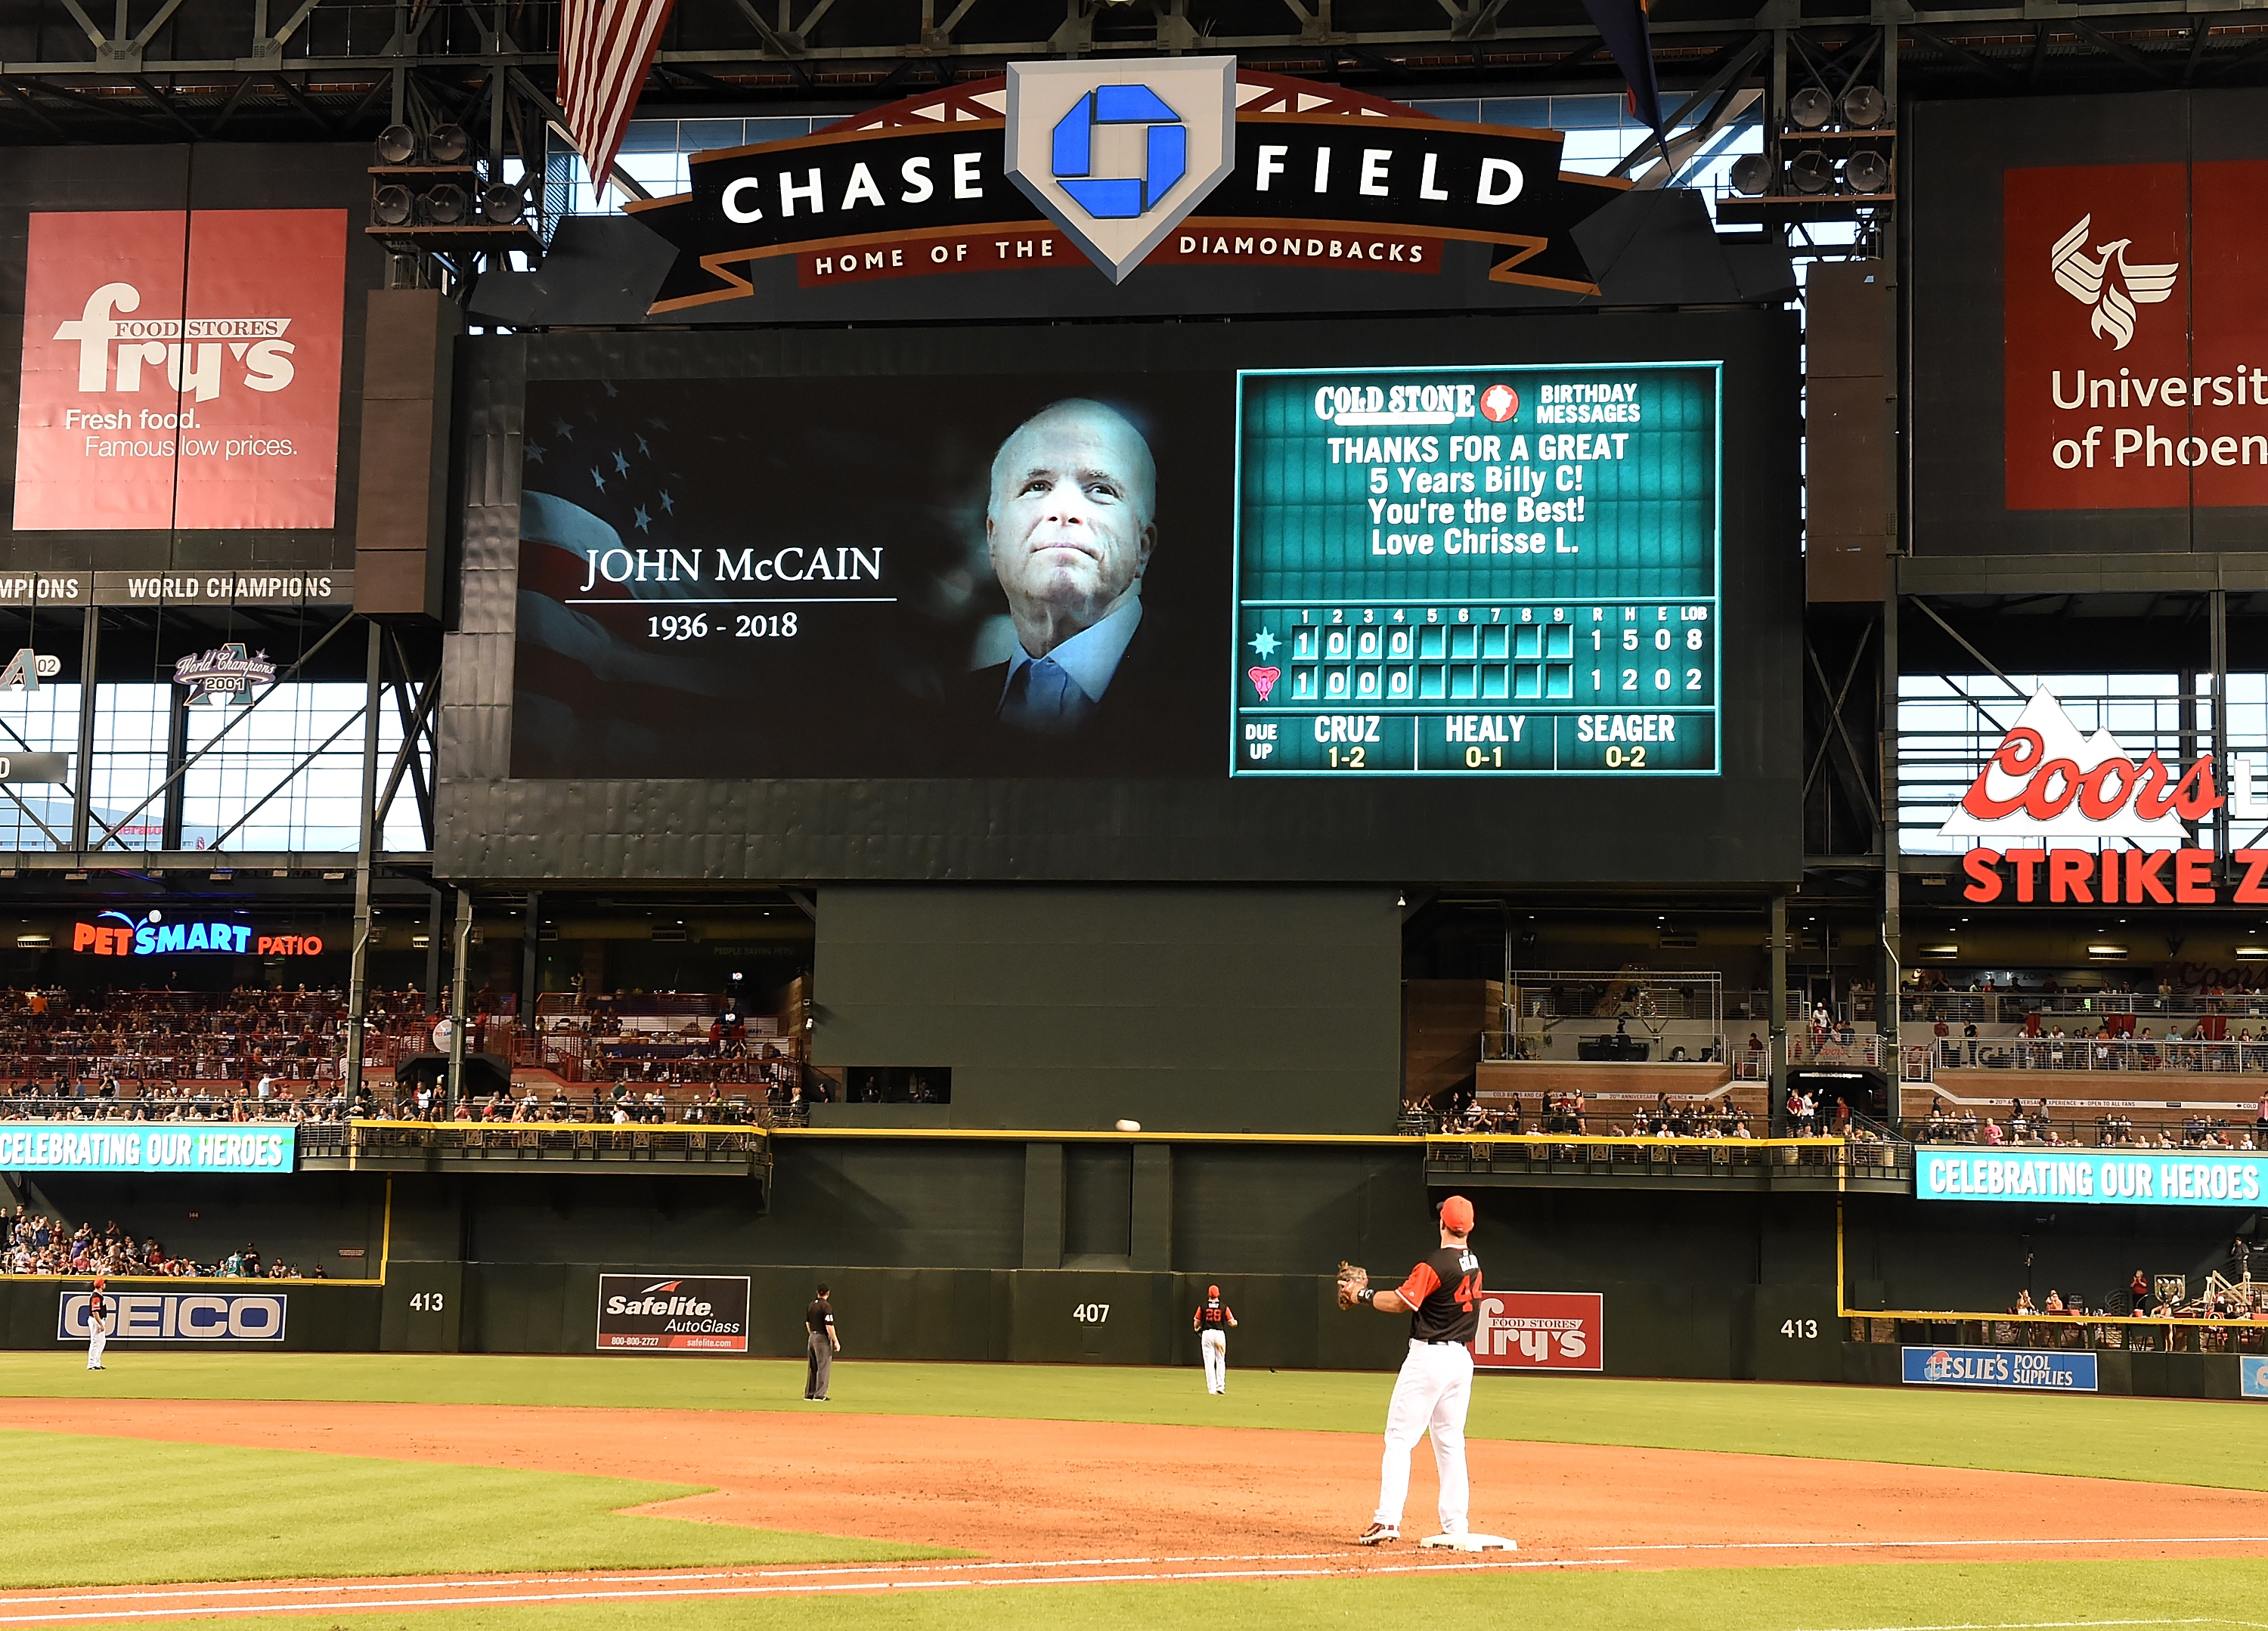 PHOENIX, AZ - AUGUST 25: The Arizona Diamondbacks paid tribute to the late US Senator John McCain during a game against the Seattle Mariners at Chase Field on August 25, 2018 in Phoenix, Arizona. All players across MLB will wear nicknames on their backs as well as colorful, non-traditional uniforms featuring alternate designs inspired by youth-league uniforms during Players Weekend. (Photo by Norm Hall/Getty Images)